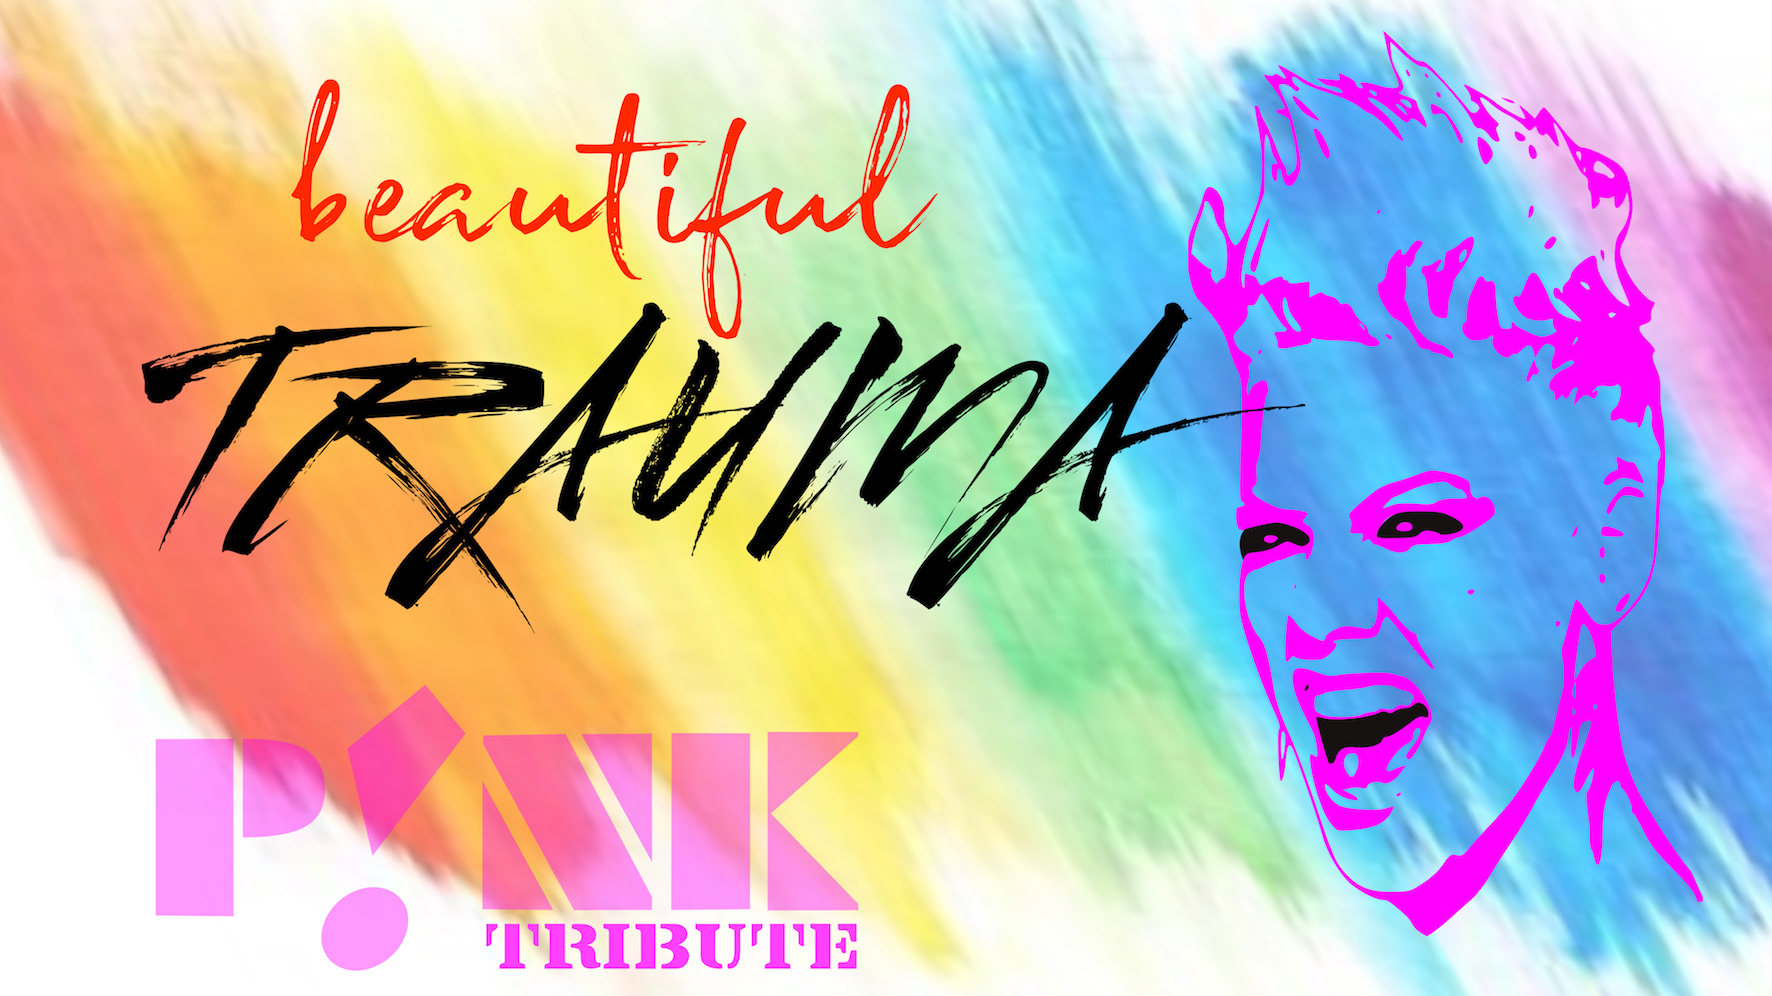 Beautiful Trauma P!nk Tribute